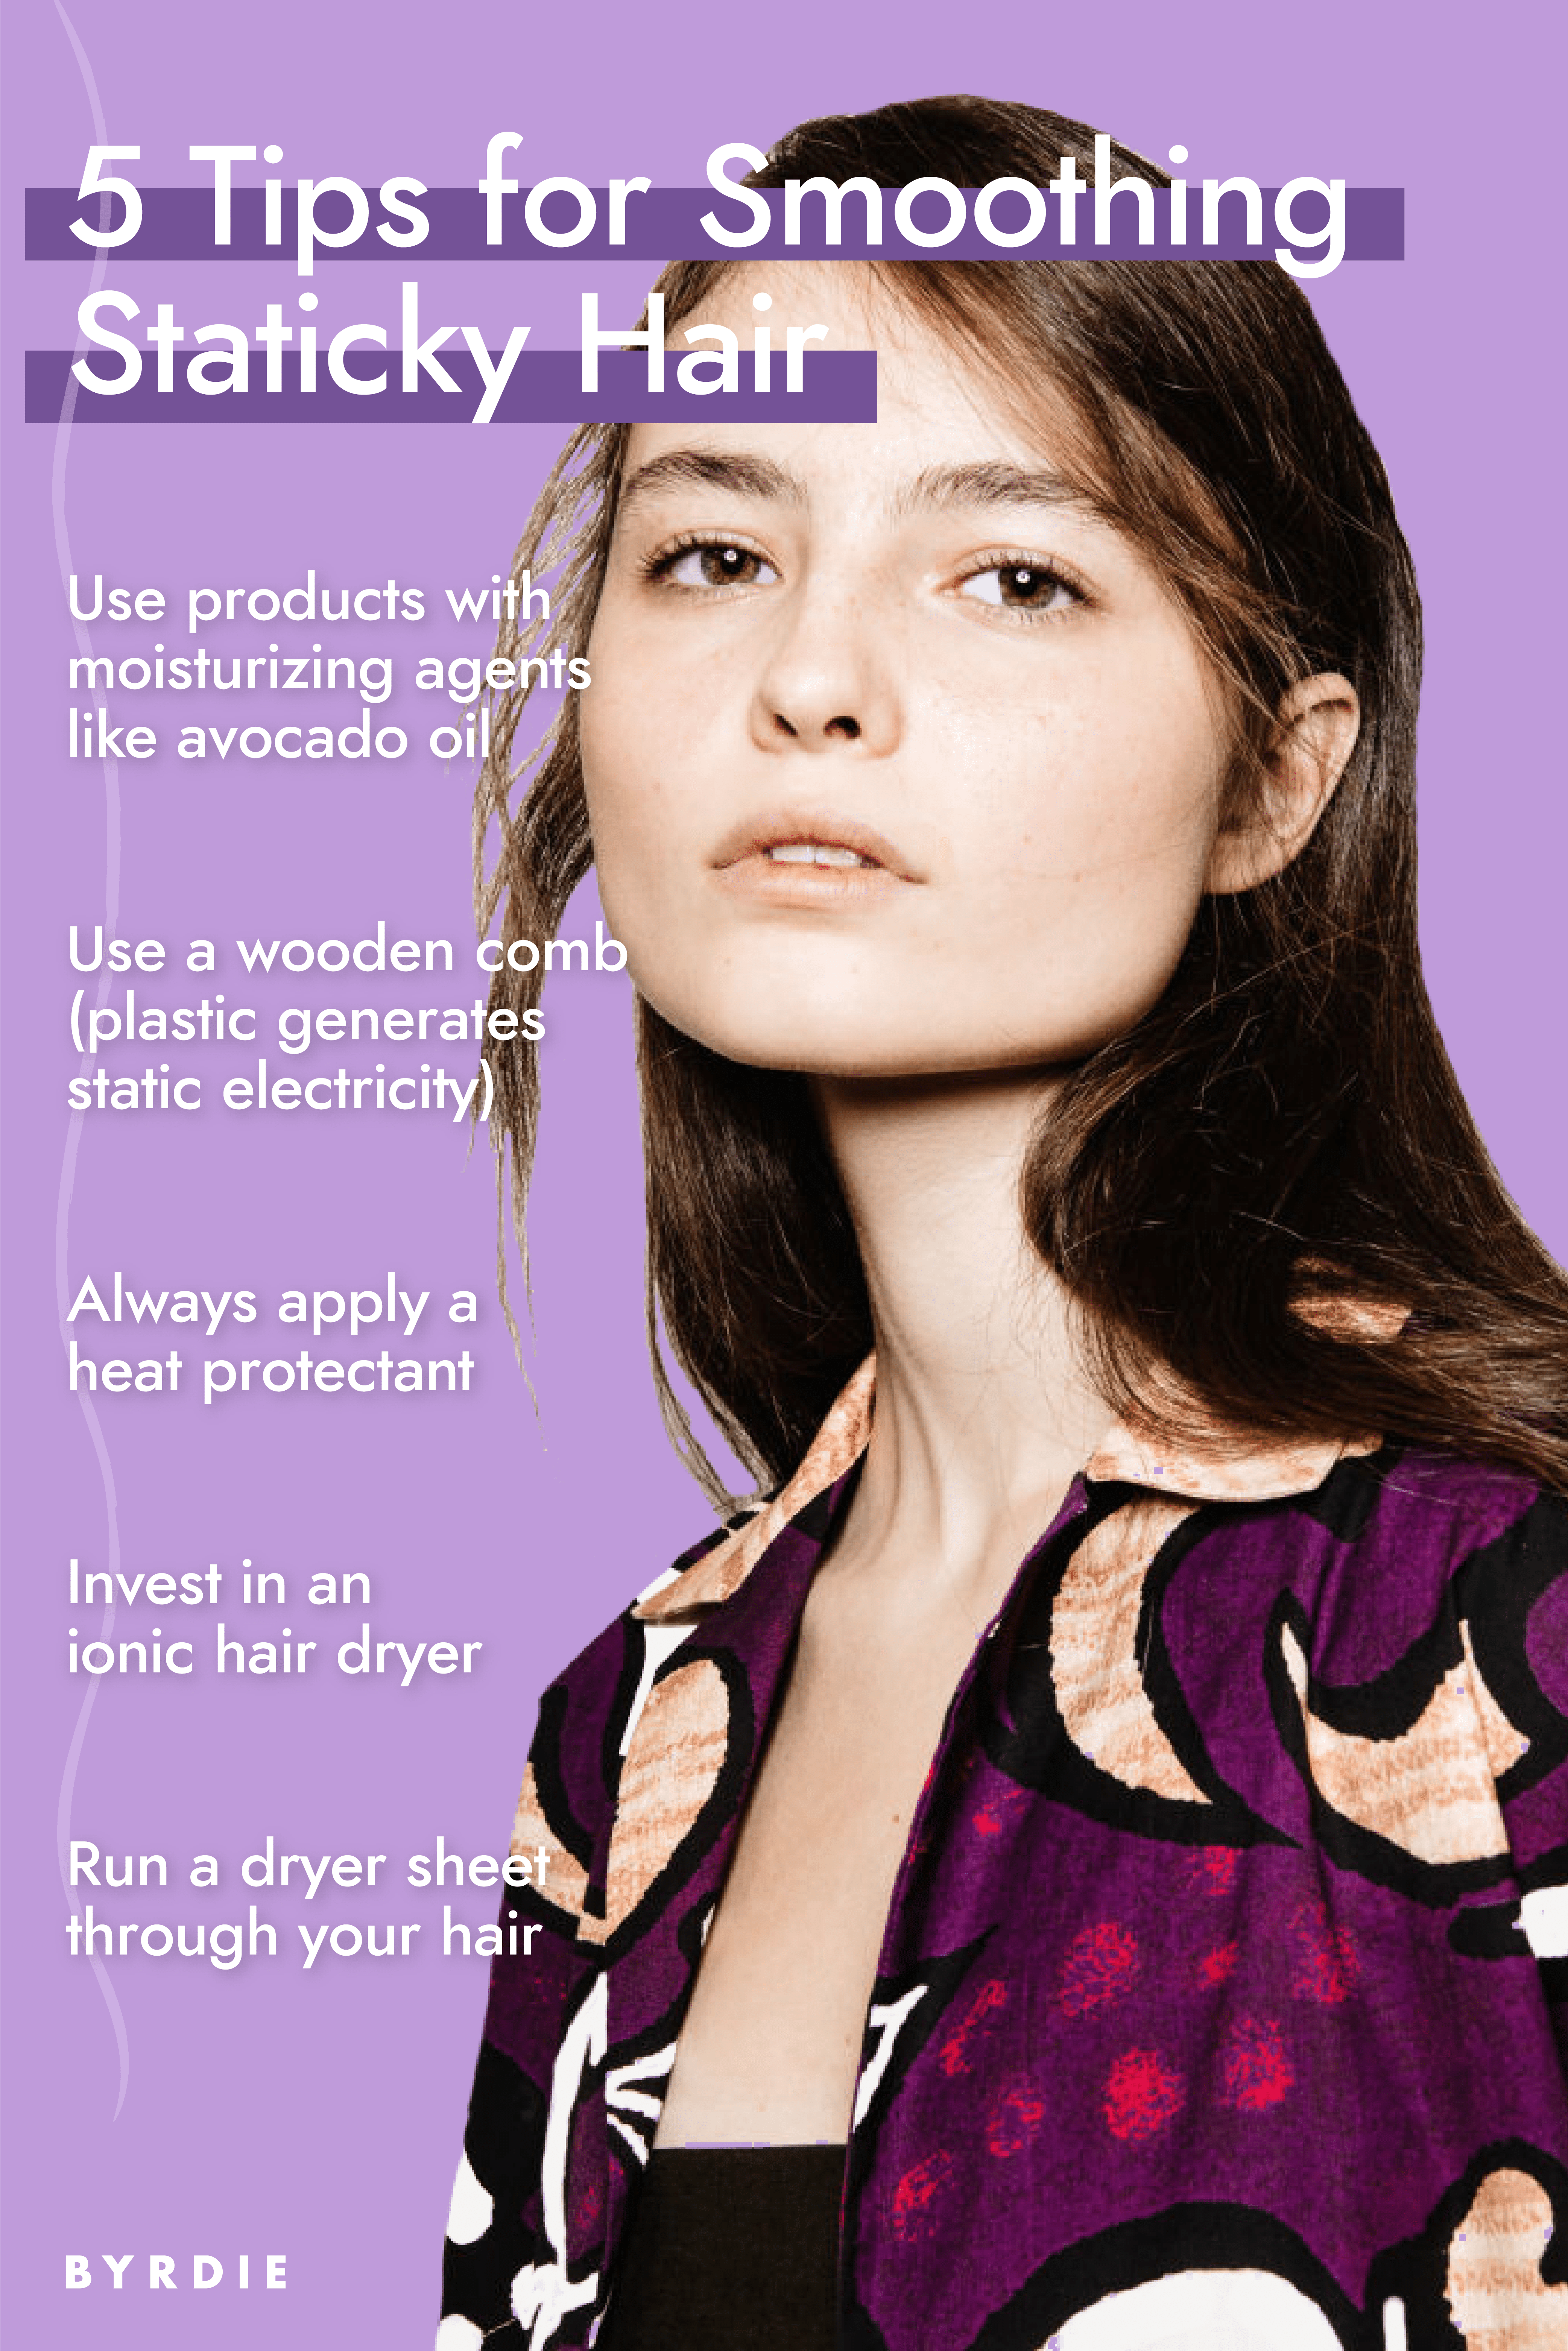 5 Tips for Smoothing Staticky Hair